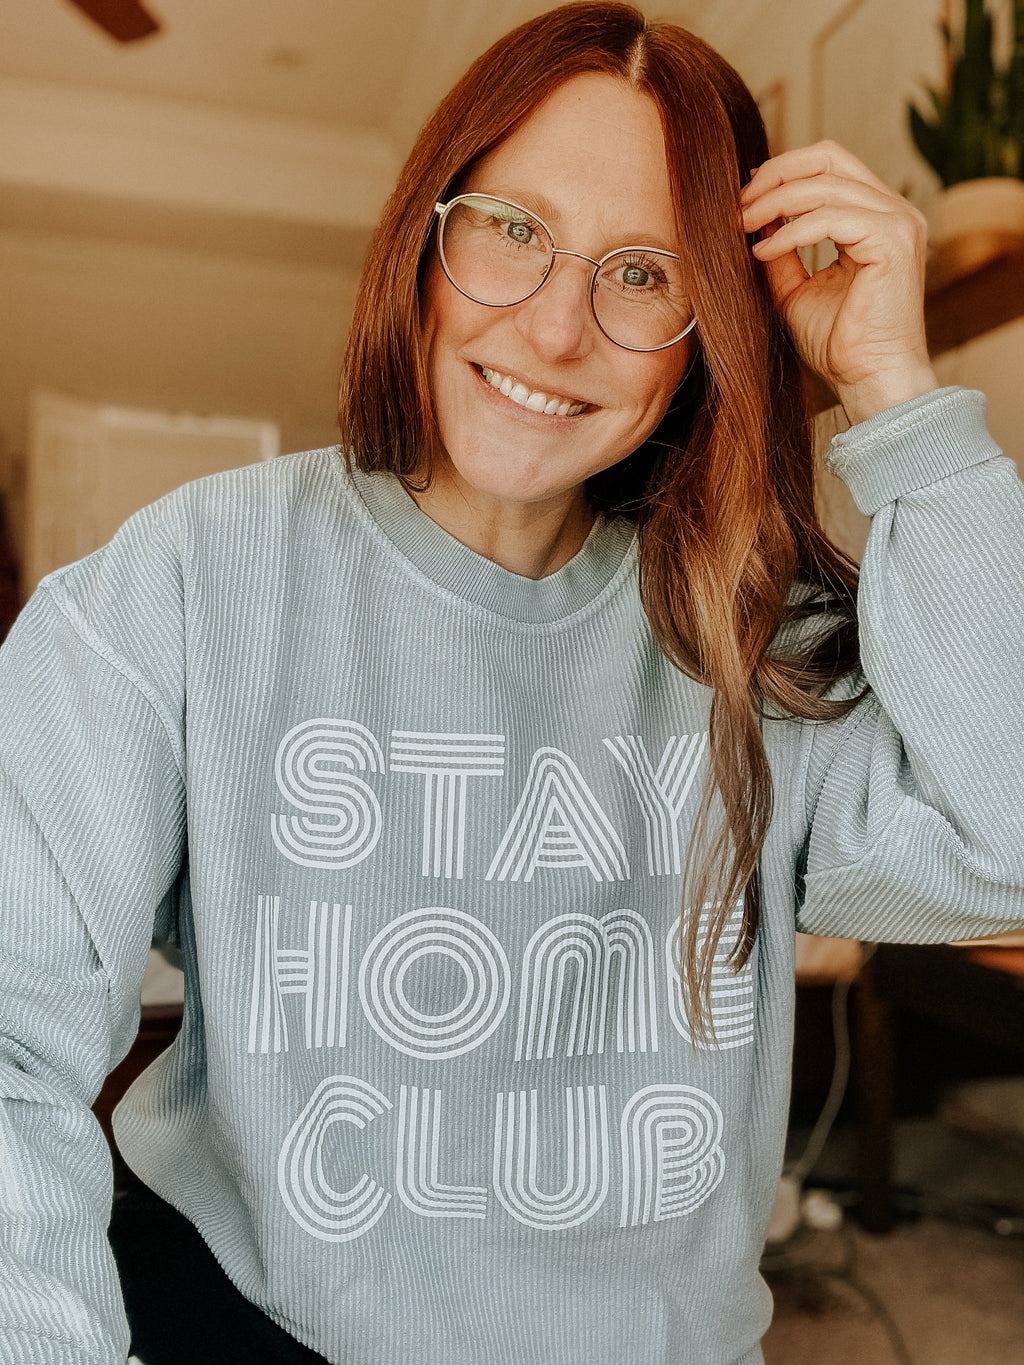 Written. Stay Home Club Corded Sweatshirt - Elysian Boutique